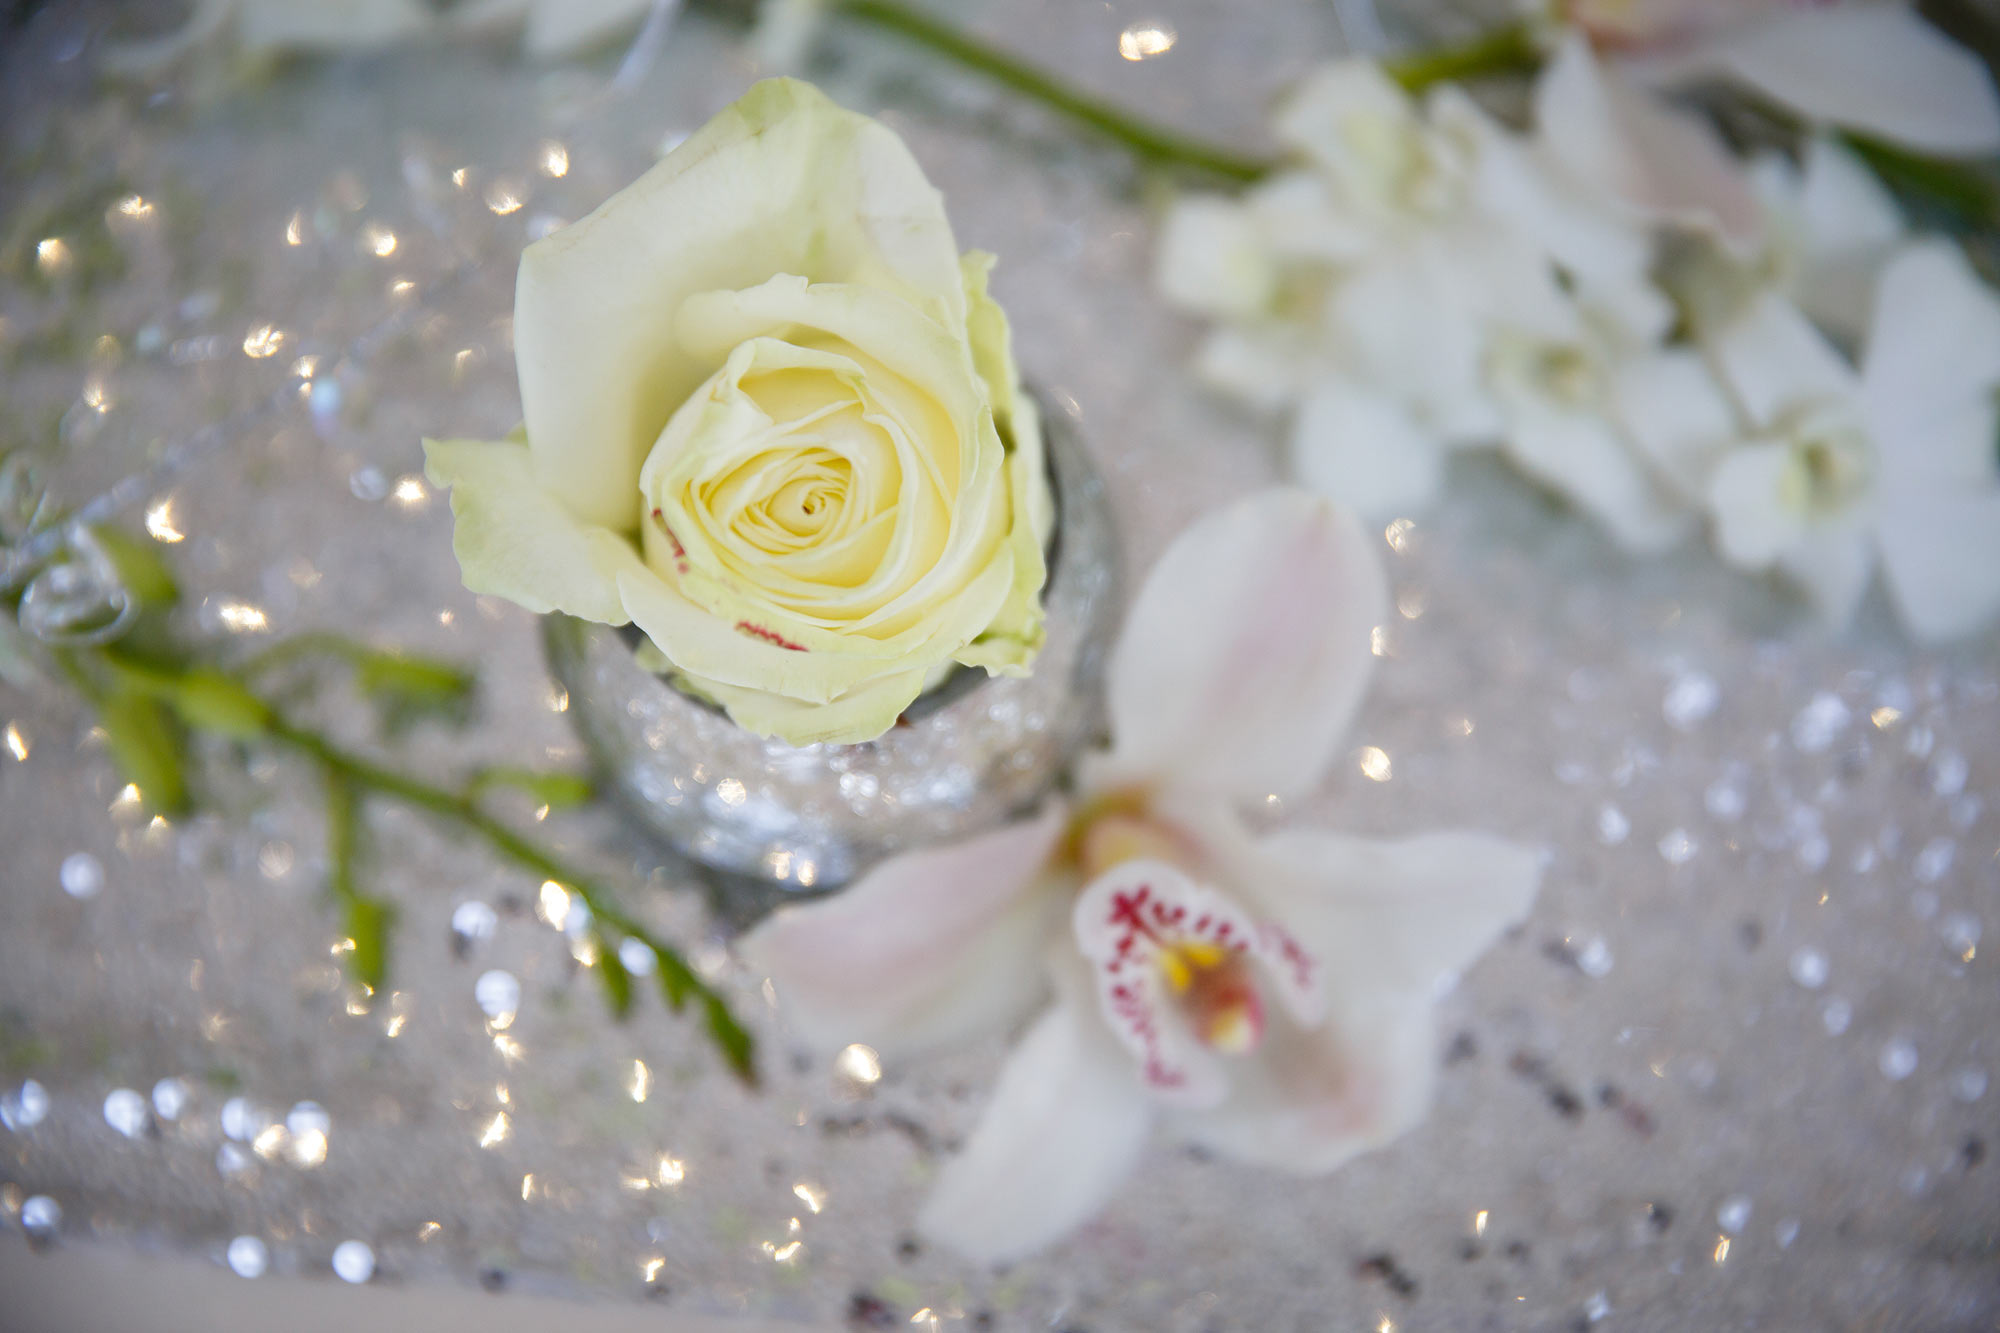 Stock Brook Country Club Wedding flowers